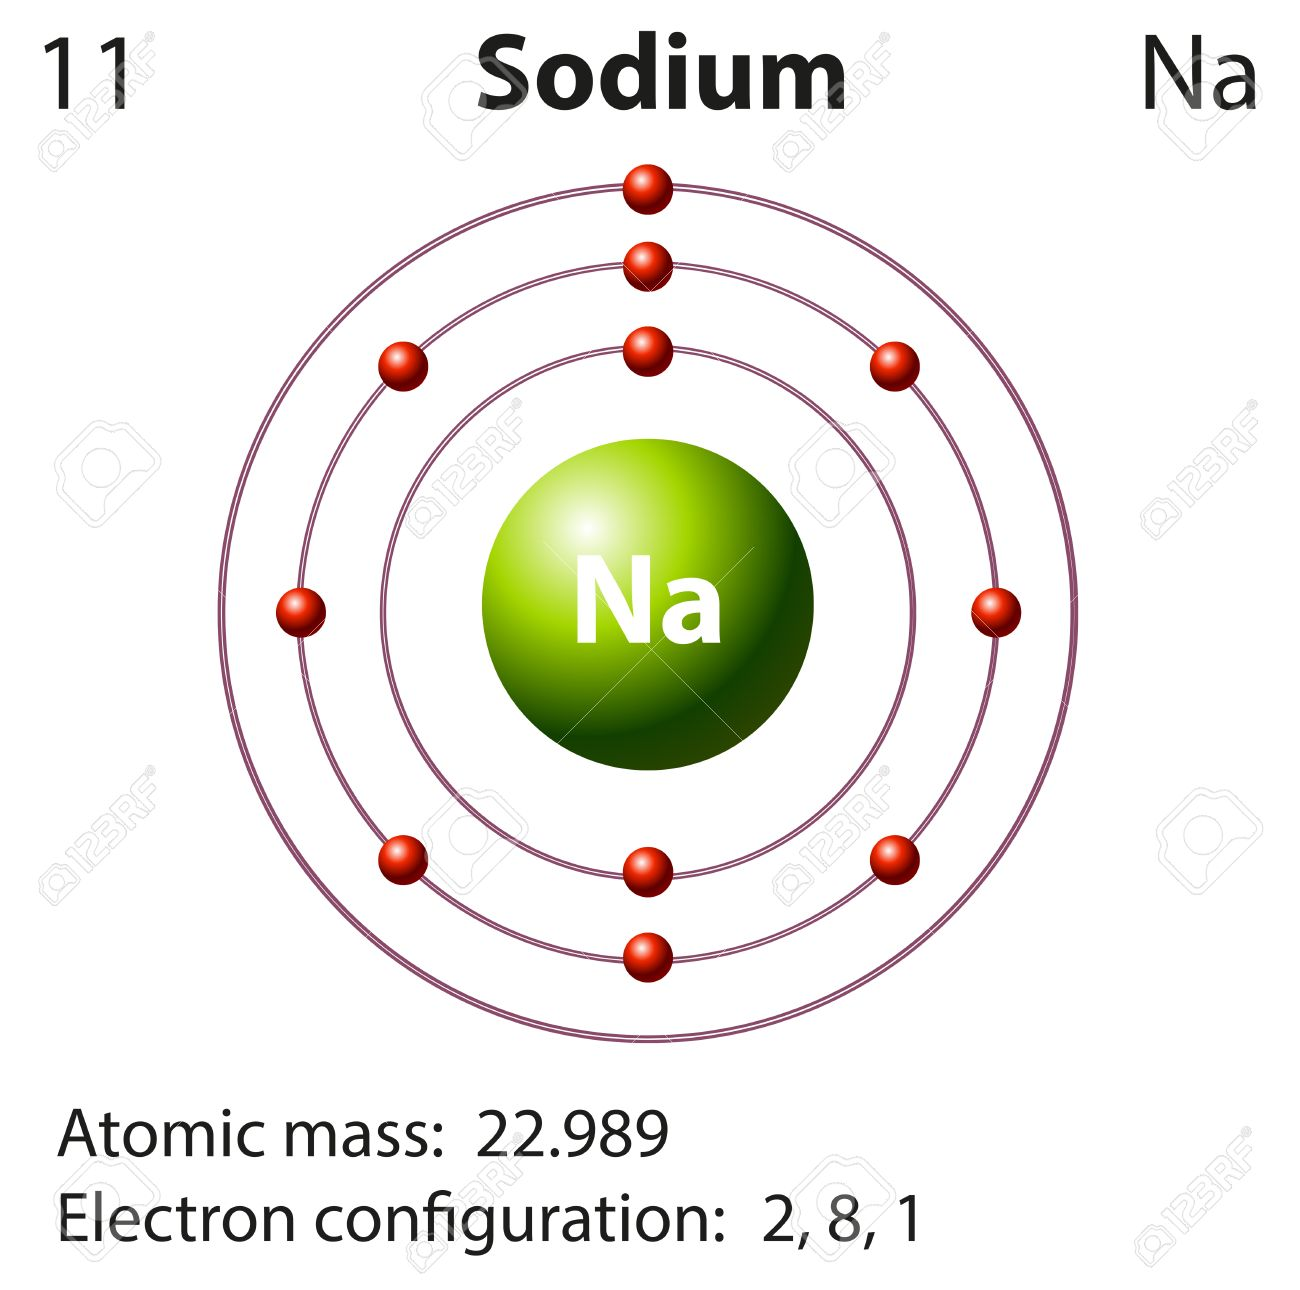 hight resolution of sodium atom diagram wiring diagrams schema si atom diagram atomic diagram sodium box wiring diagram sodium